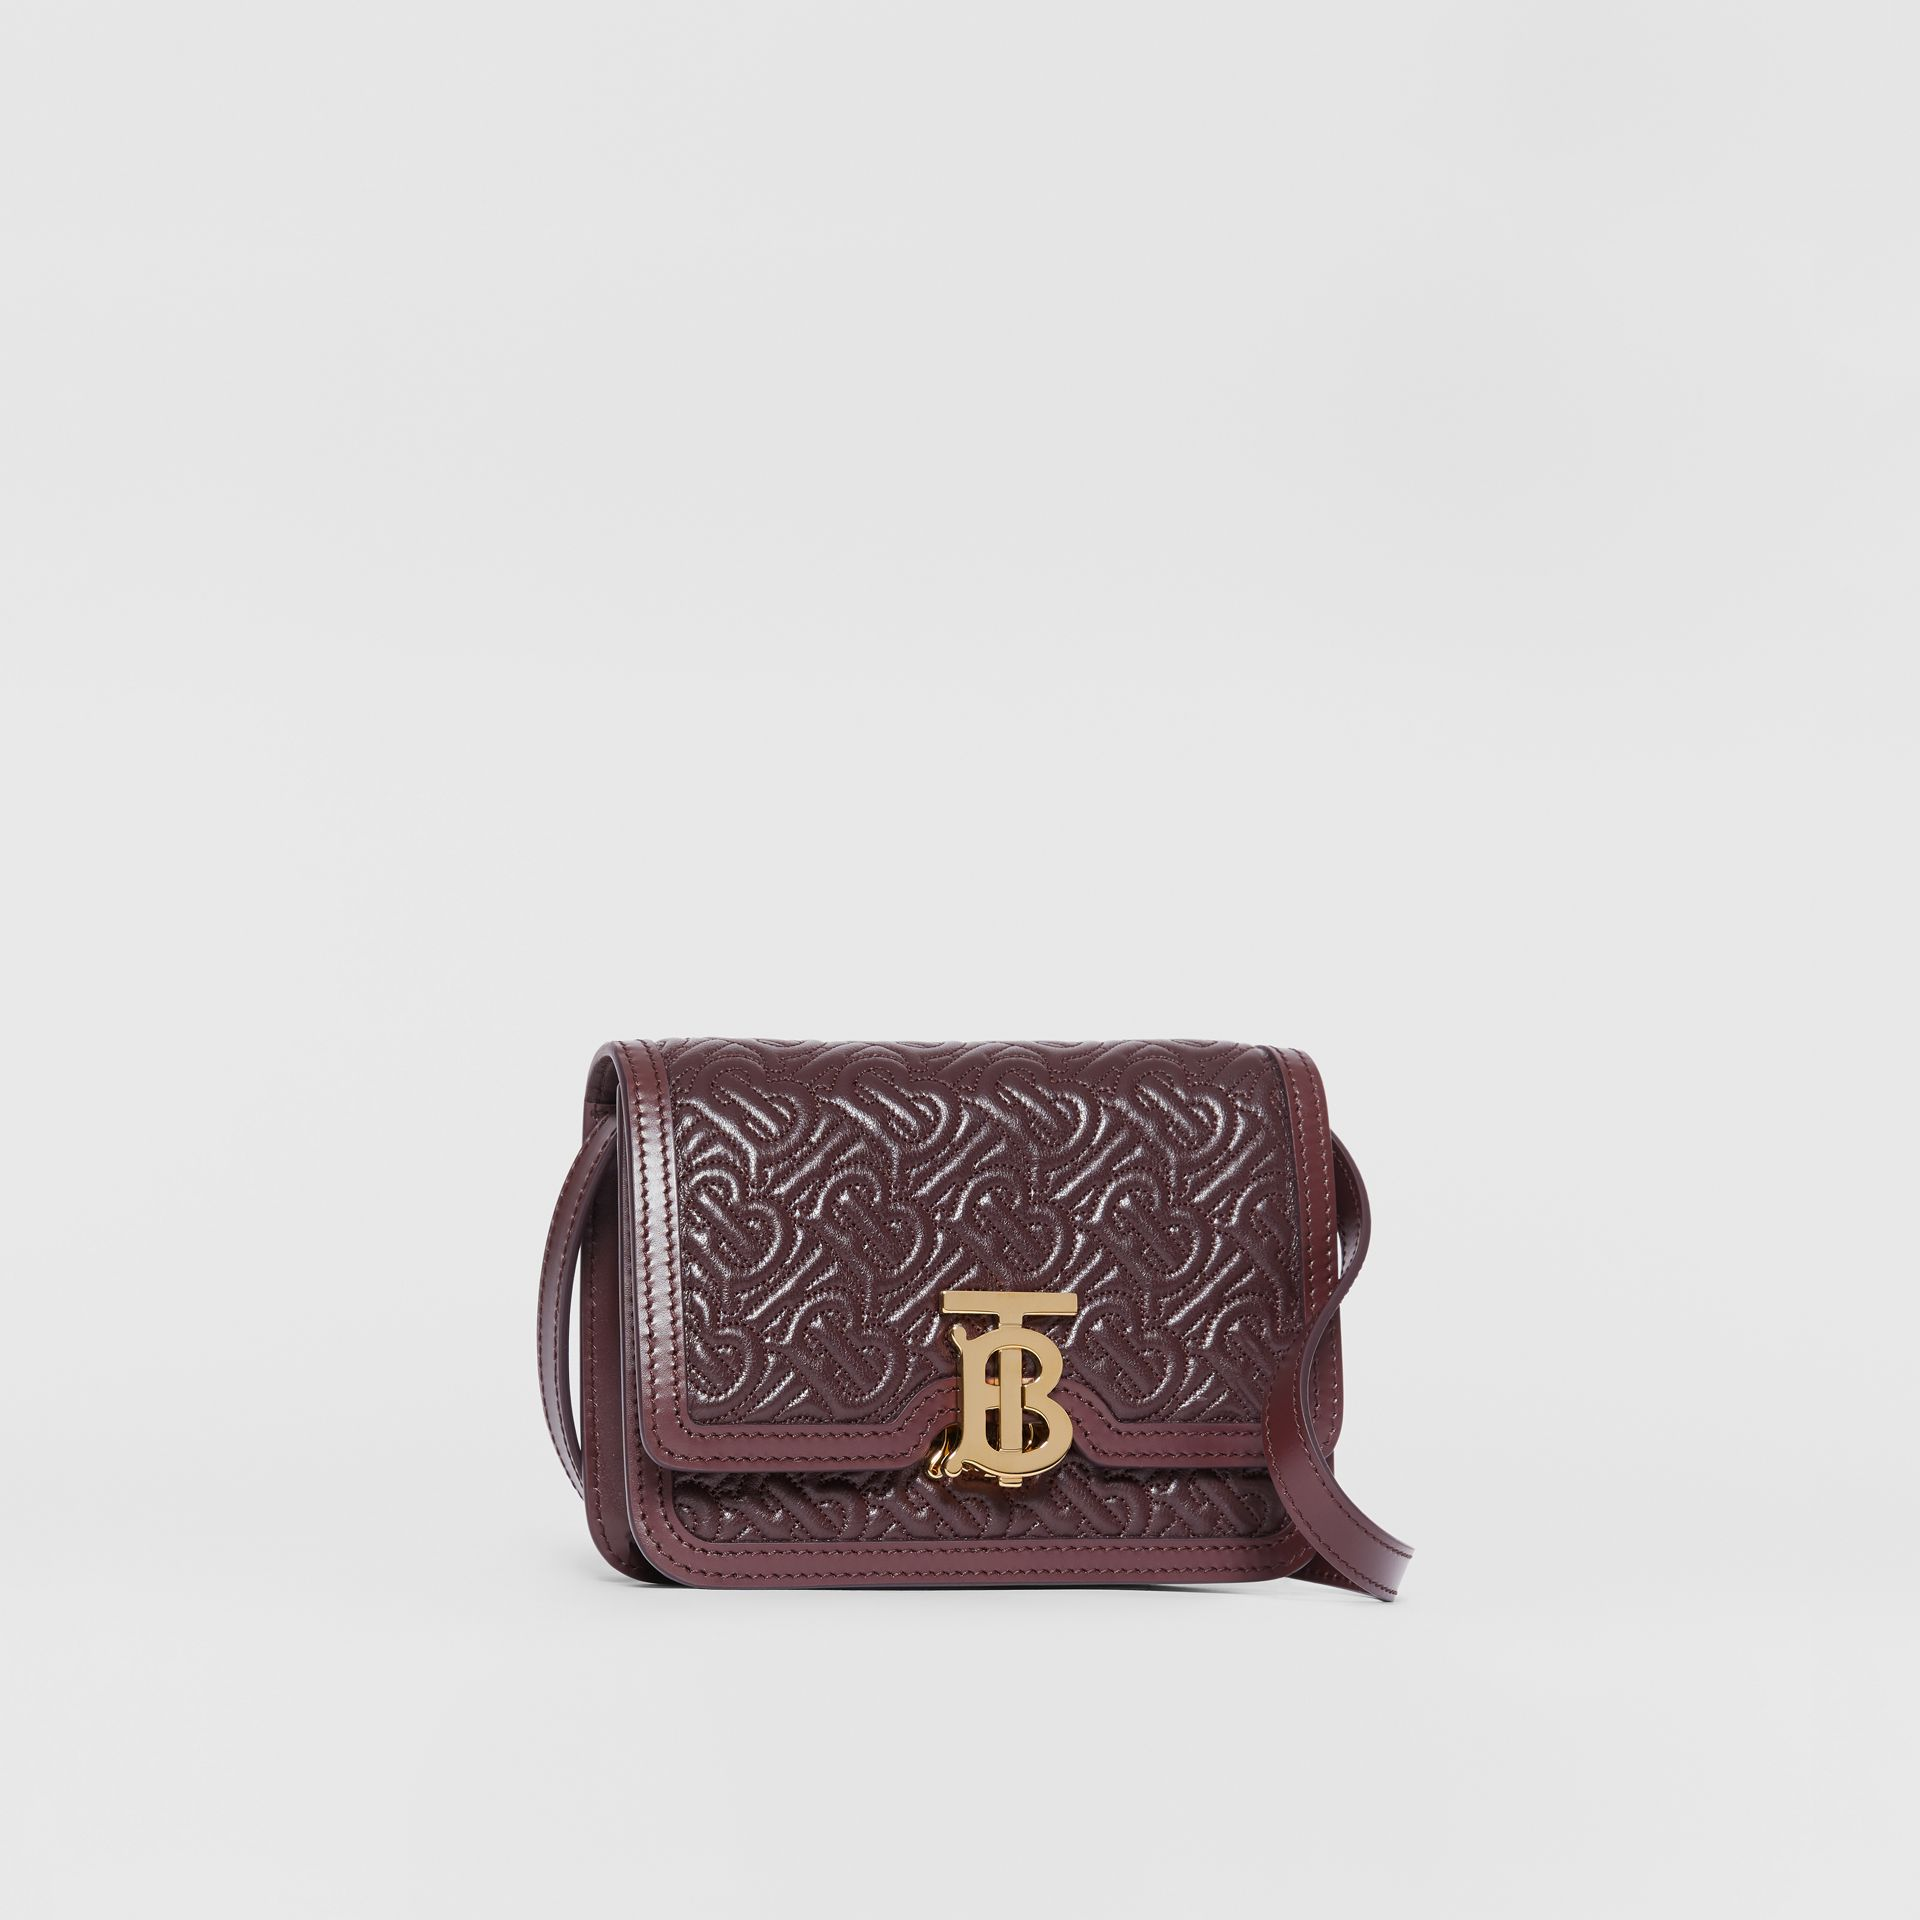 Mini Quilted Monogram Lambskin TB Bag in Dark Burgundy - Women | Burberry United Kingdom - gallery image 6